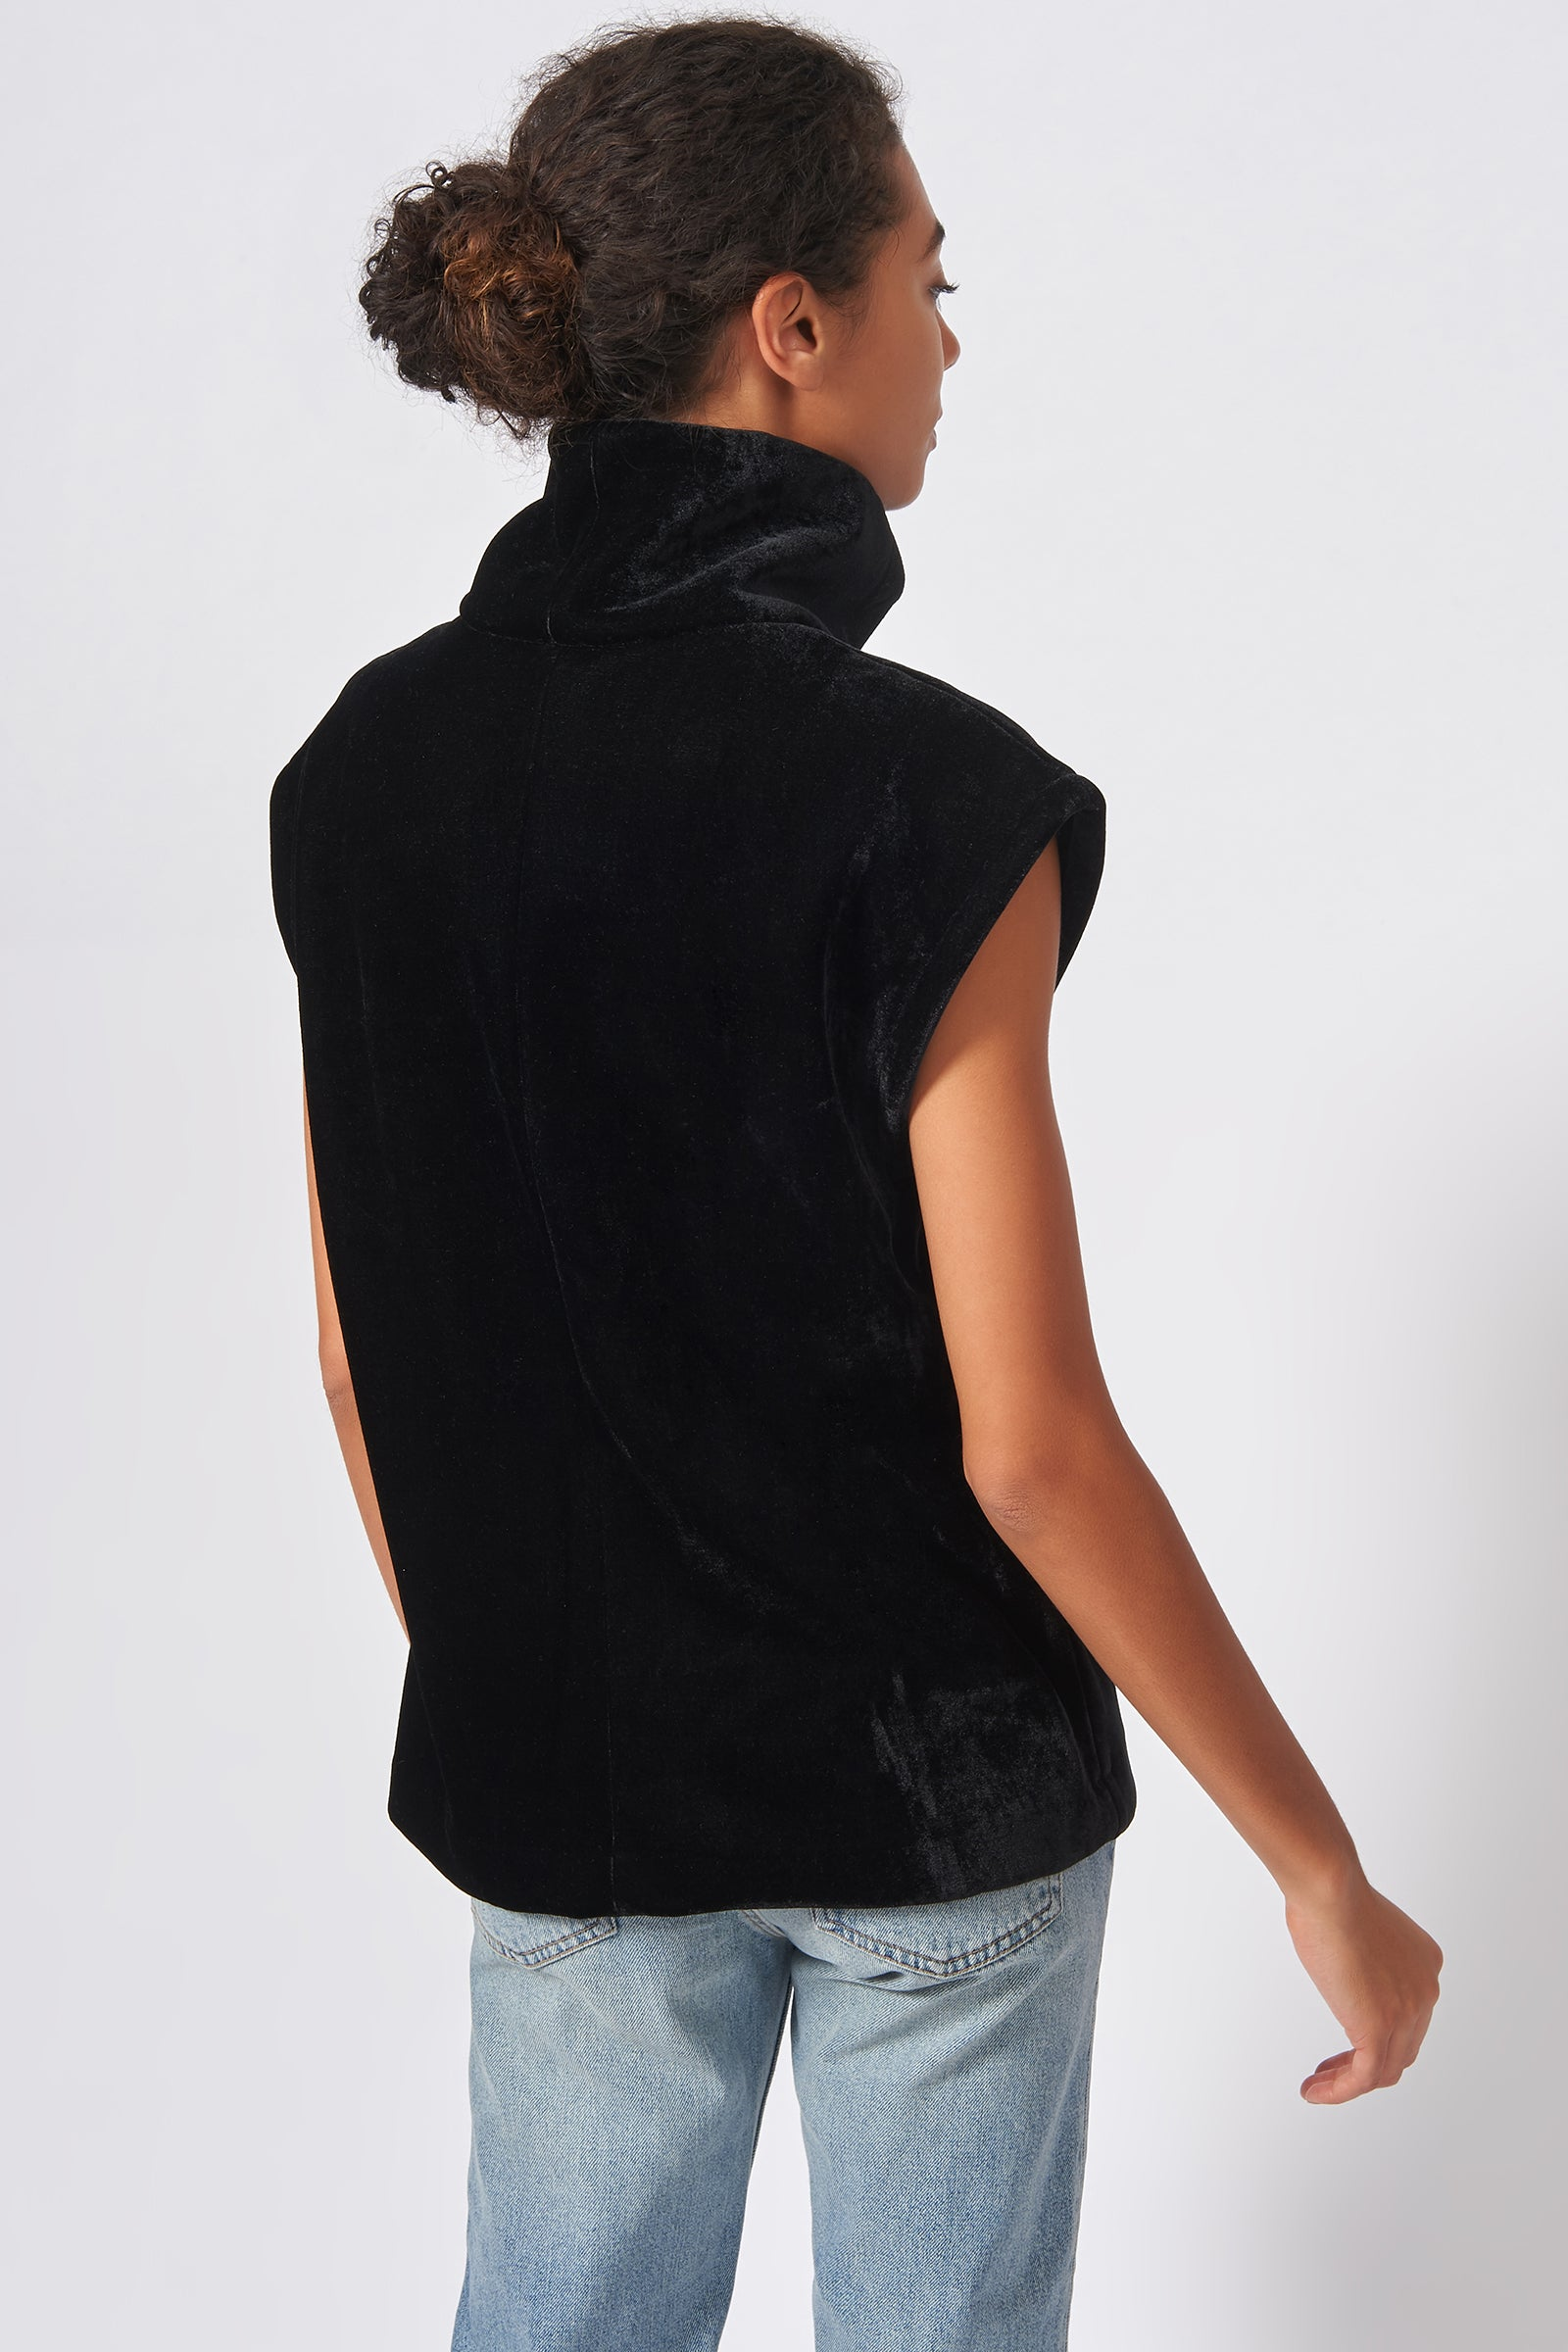 Kal Rieman Velvet Seam Turtleneck in Black on Model Front View